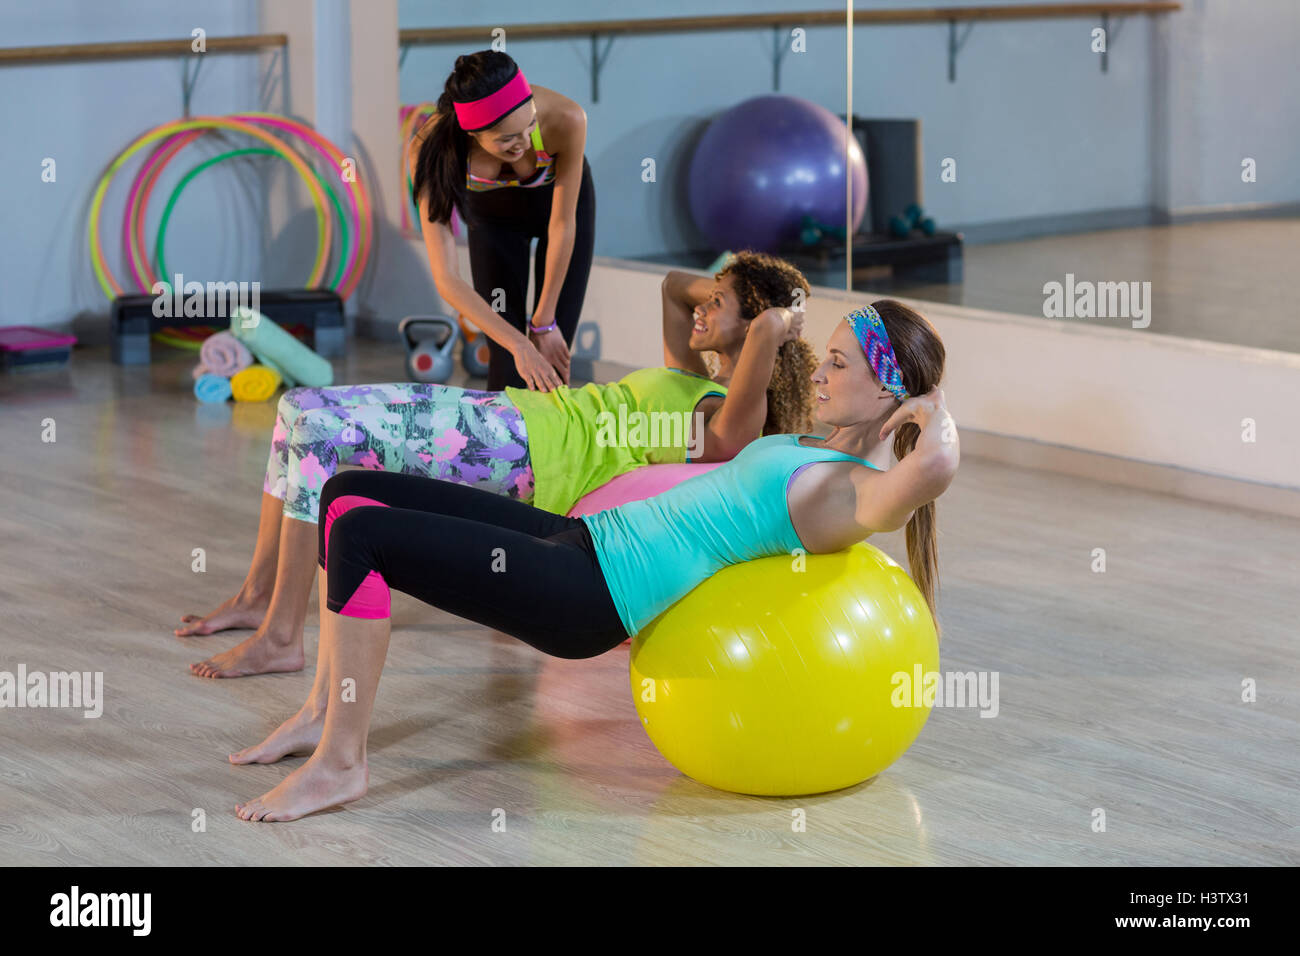 Female trainer assisting woman to exercise on exercise ball - Stock Image